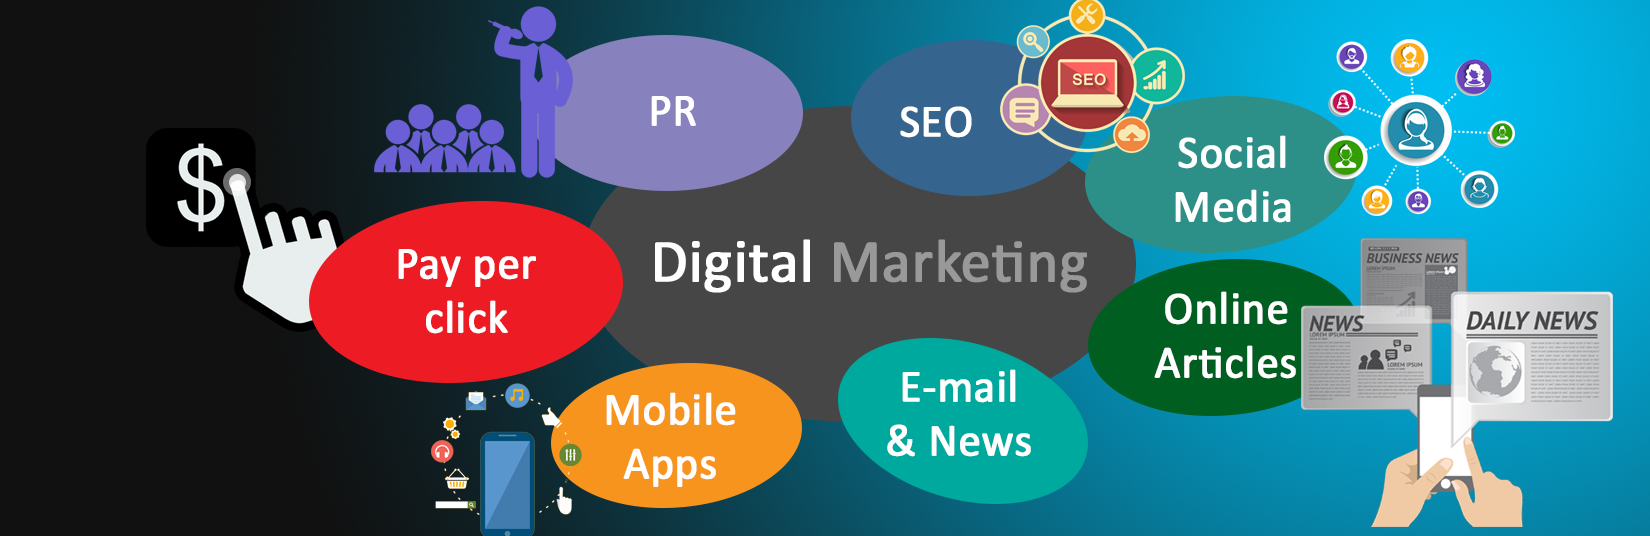 3 Reasons Why You Need Digital Marketing